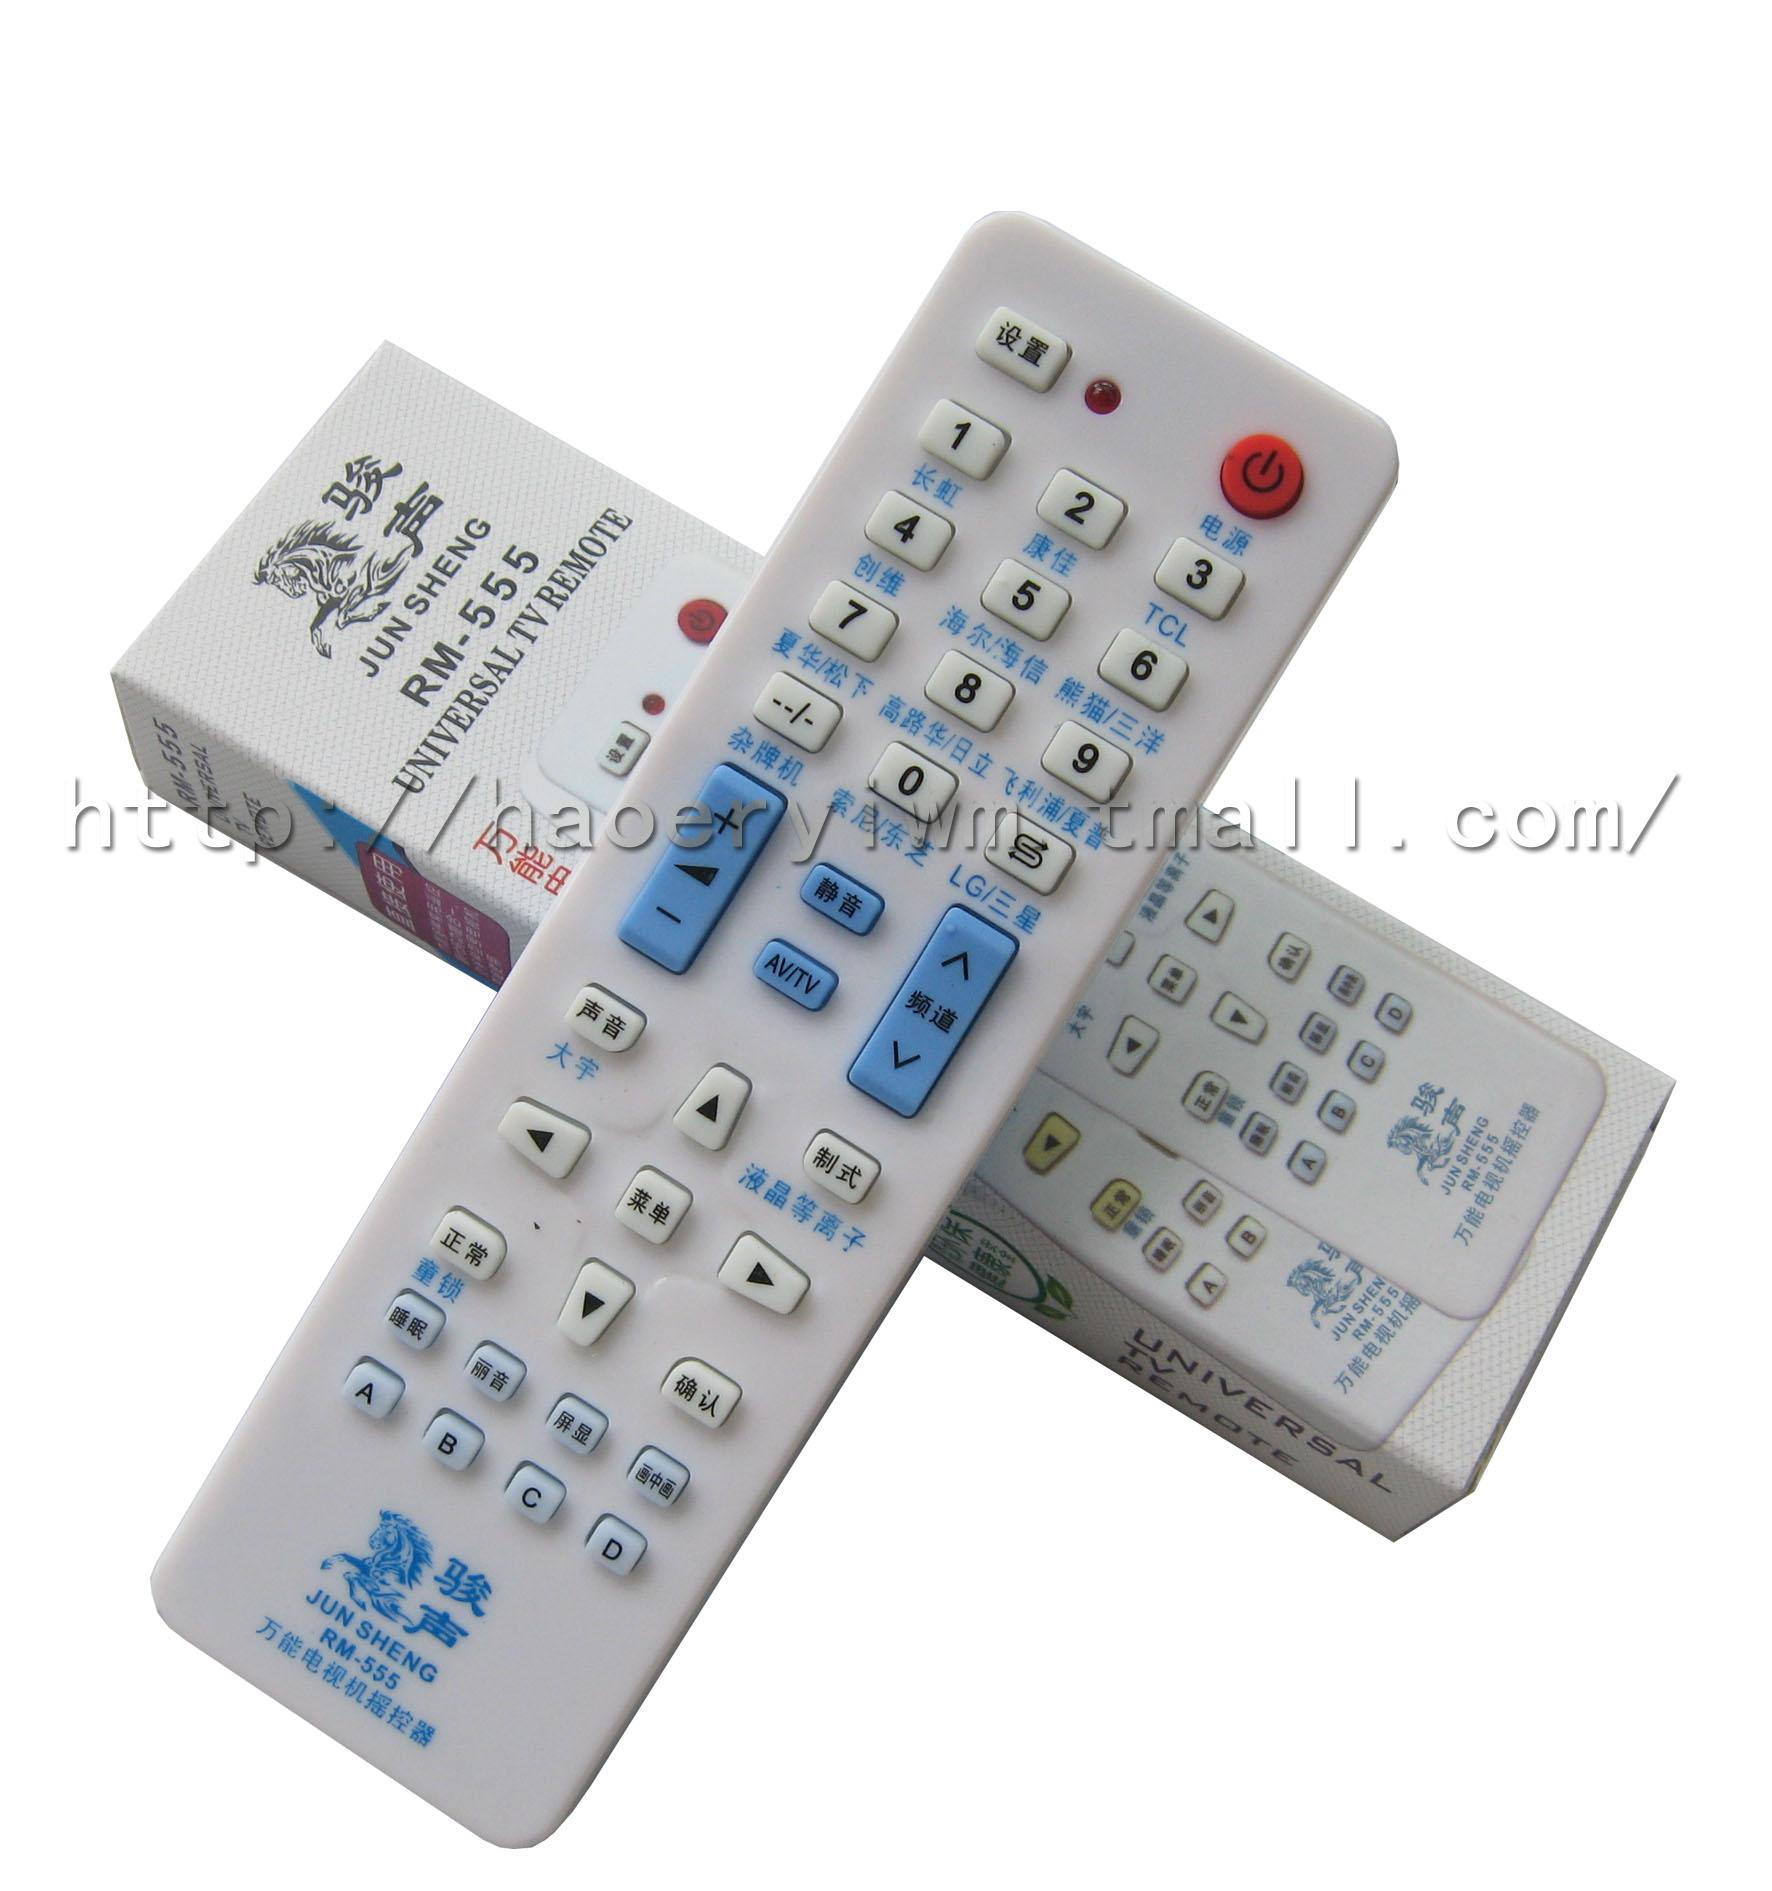 Universal the Brand/Old/Liquid Crystal/Plasma/Rear Projection/Inferior Brand/Assembly TV Remote Control